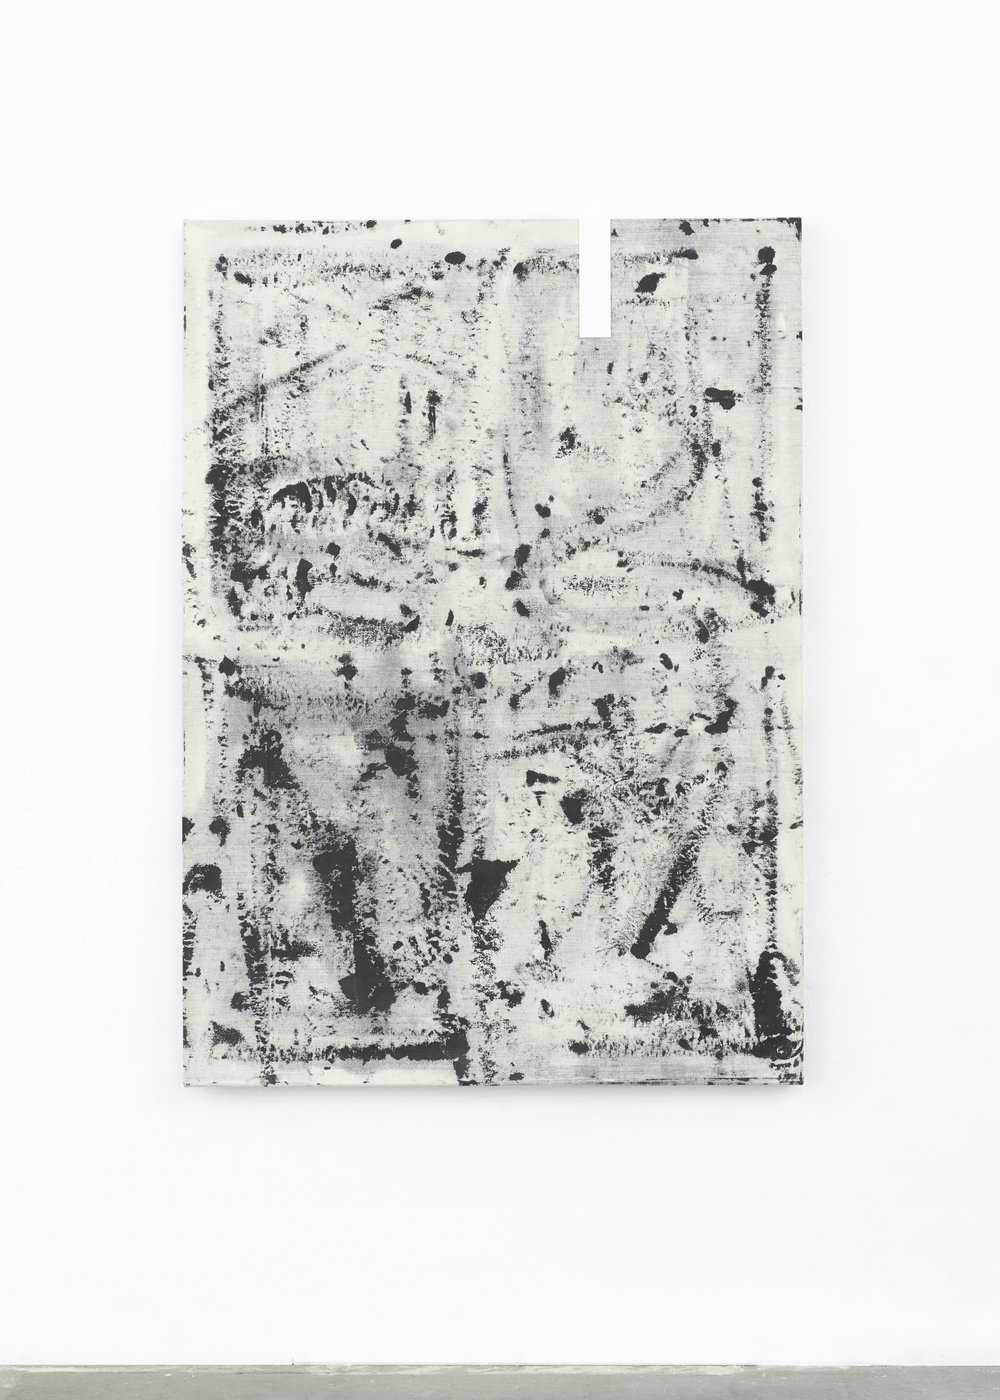 Laura Sachs, Ice, 140 x 100 cm, Ink and Metal on Canvas, 2018